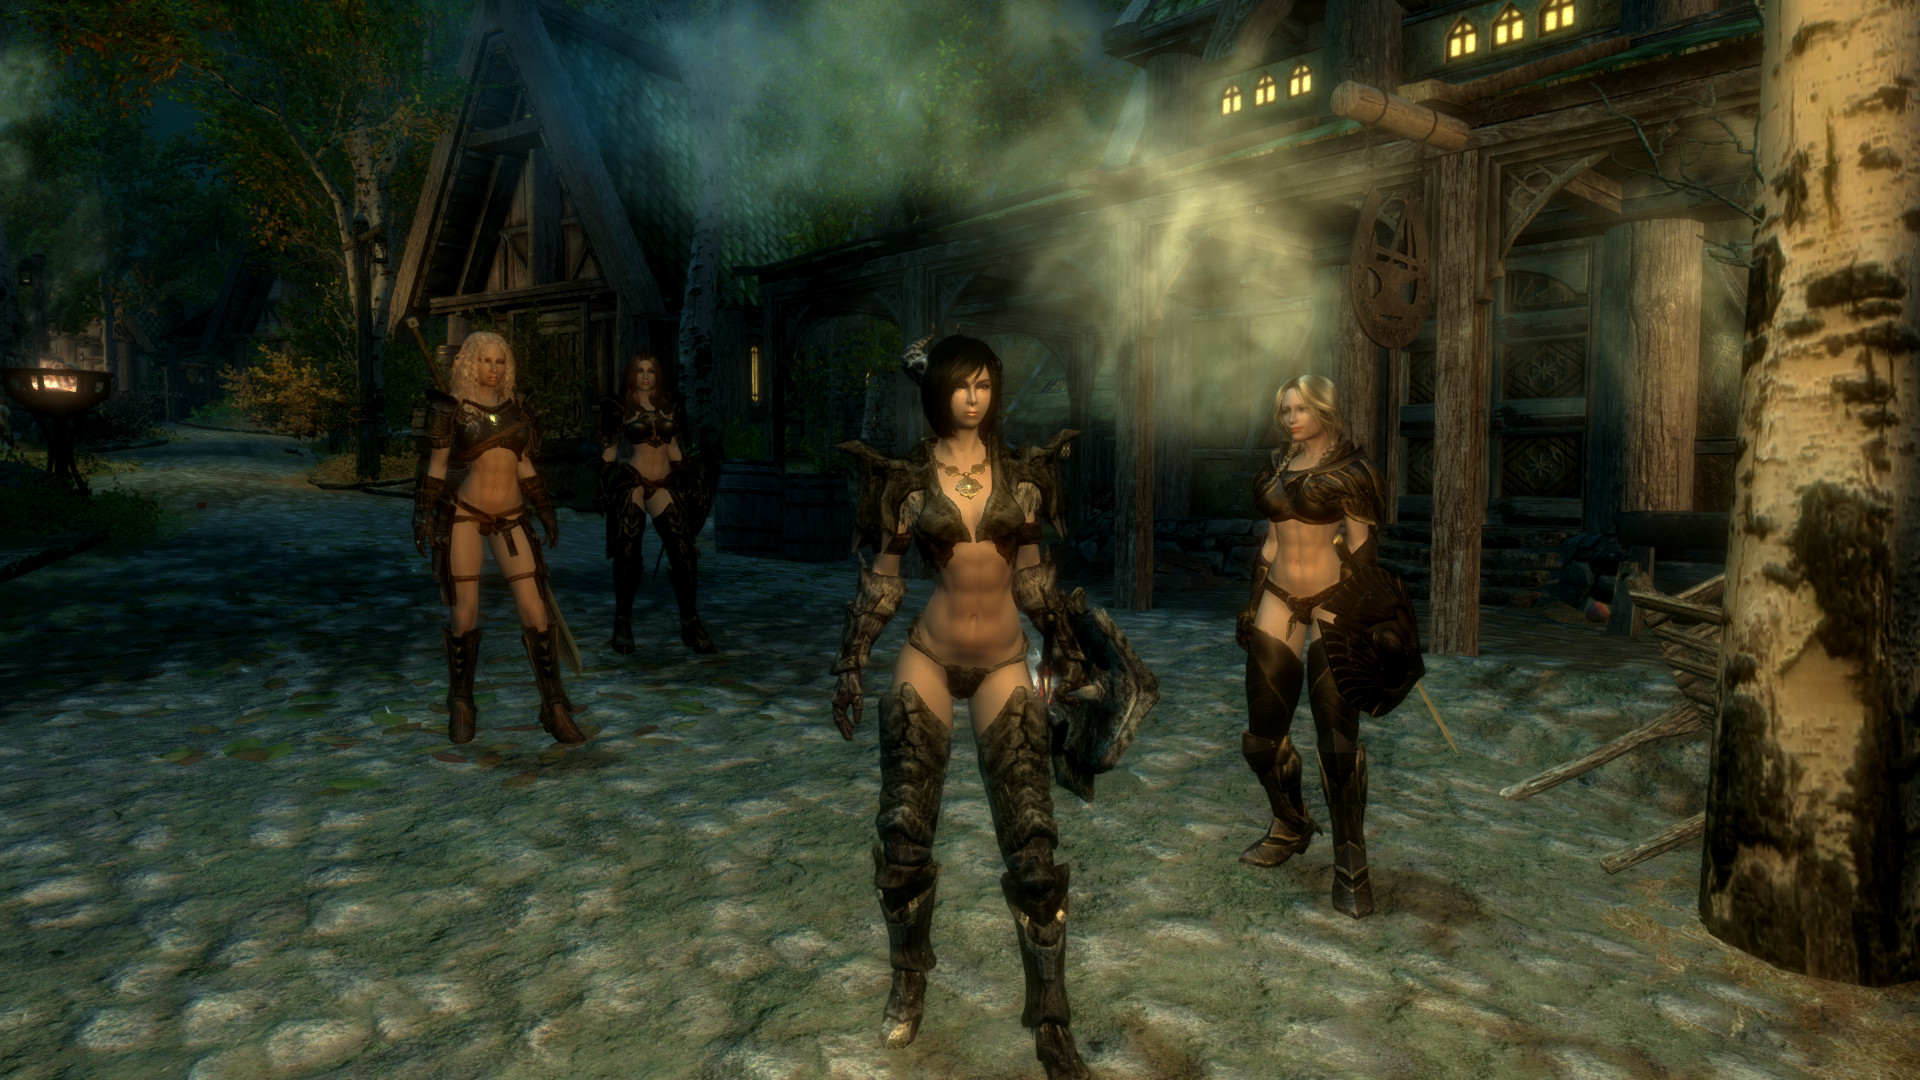 y Vanilla Female Armor for UNP and SevenBase with BBP at Skyrim